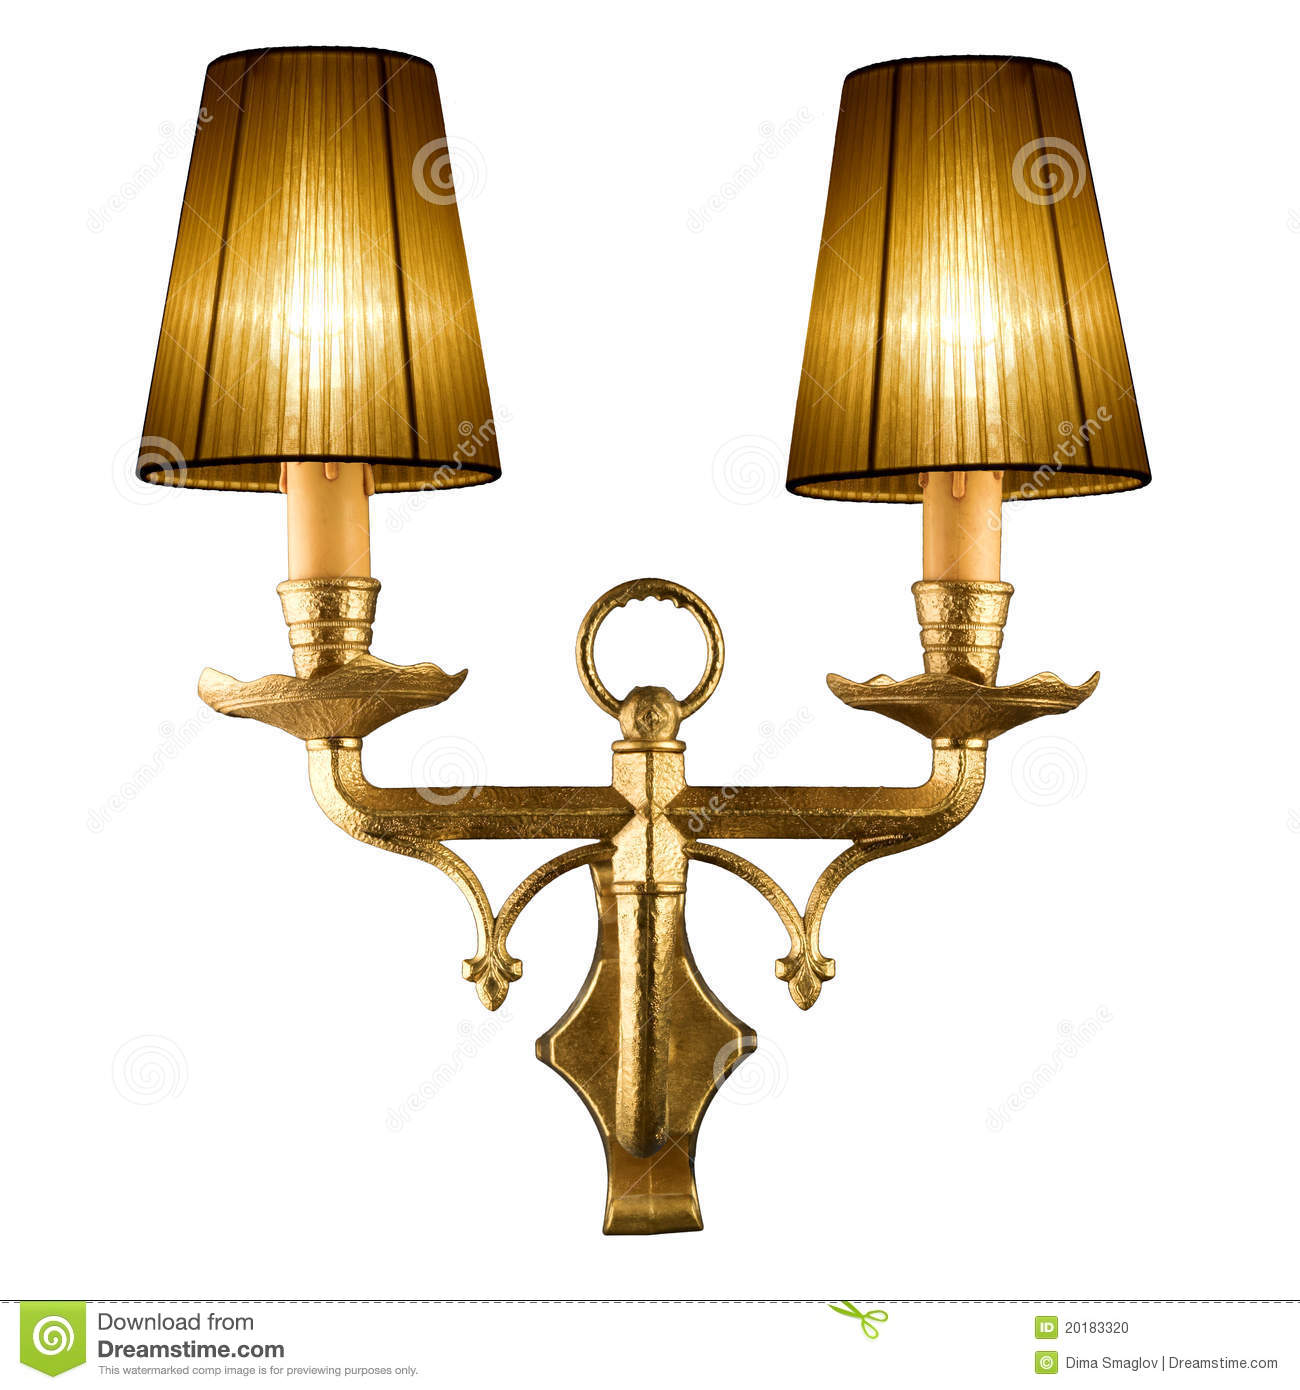 Vintage Wall Lamp Stock Photos.